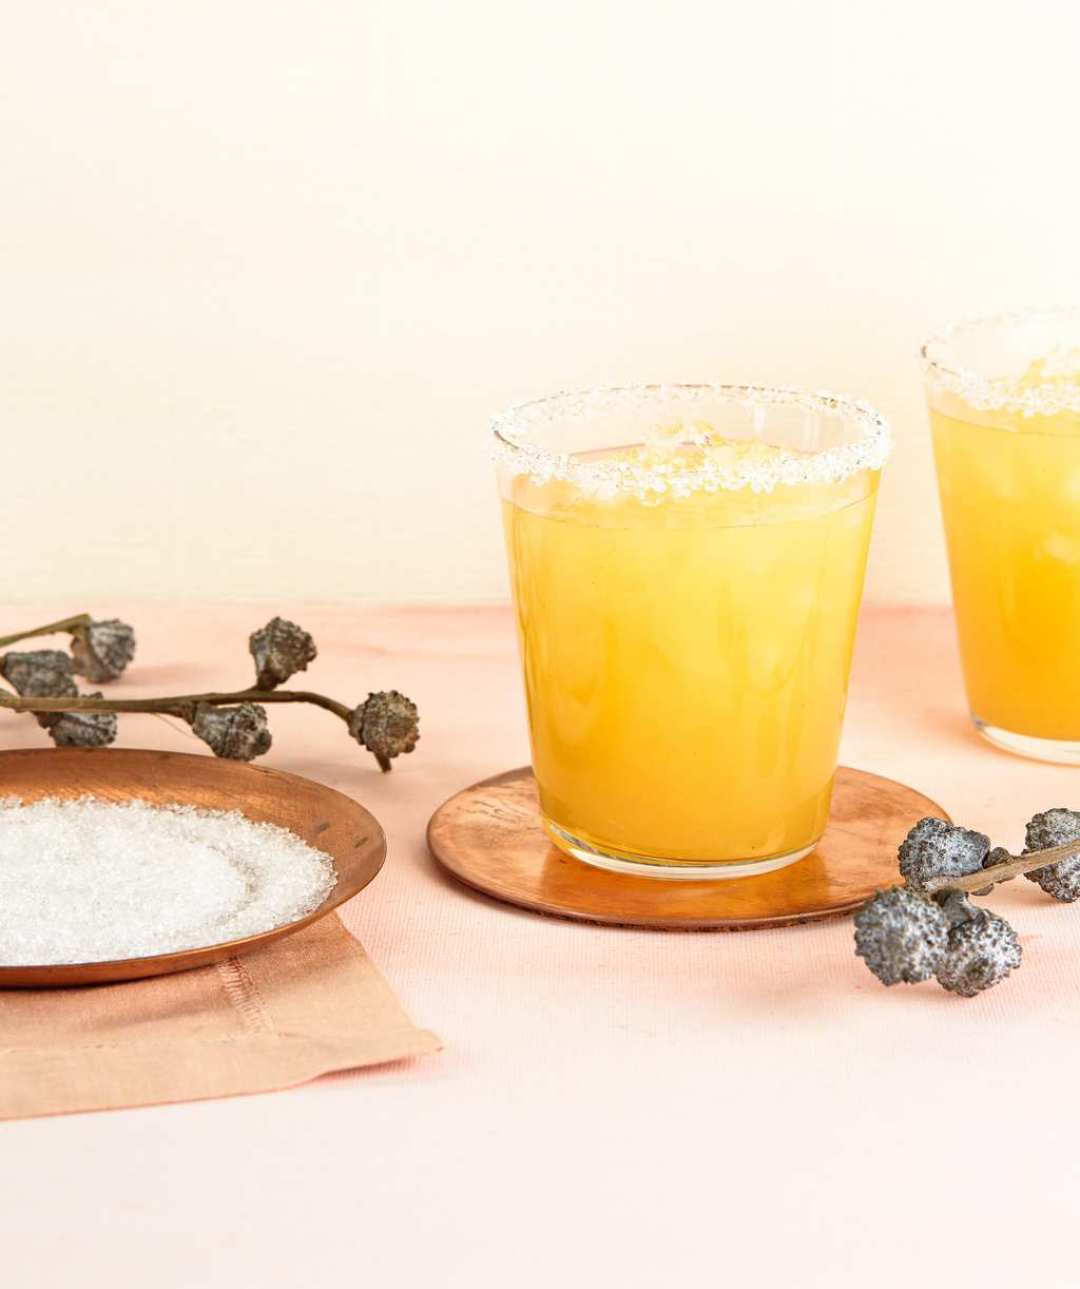 Peach Ginger Fizz is a refreshing cocktail with the juiciness of fruit flavor. Make a mocktail the entire family can enjoy.